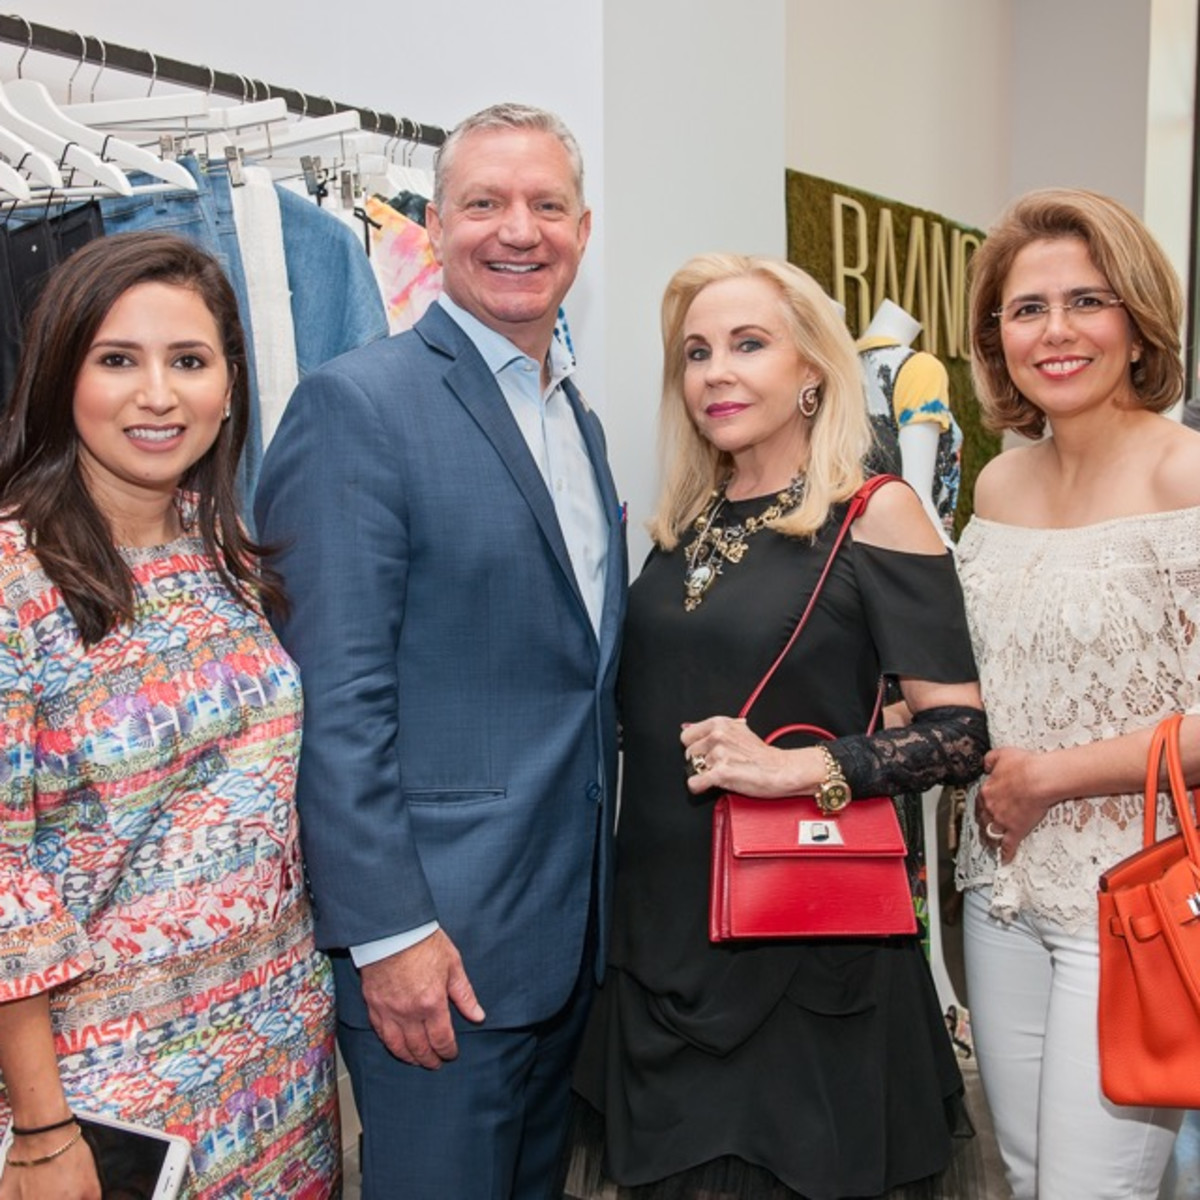 Jennifer Rivera, Mike Waterman, Carolyn Farb, Fariba Taghi at Vivienne Tam appearance at Baanou